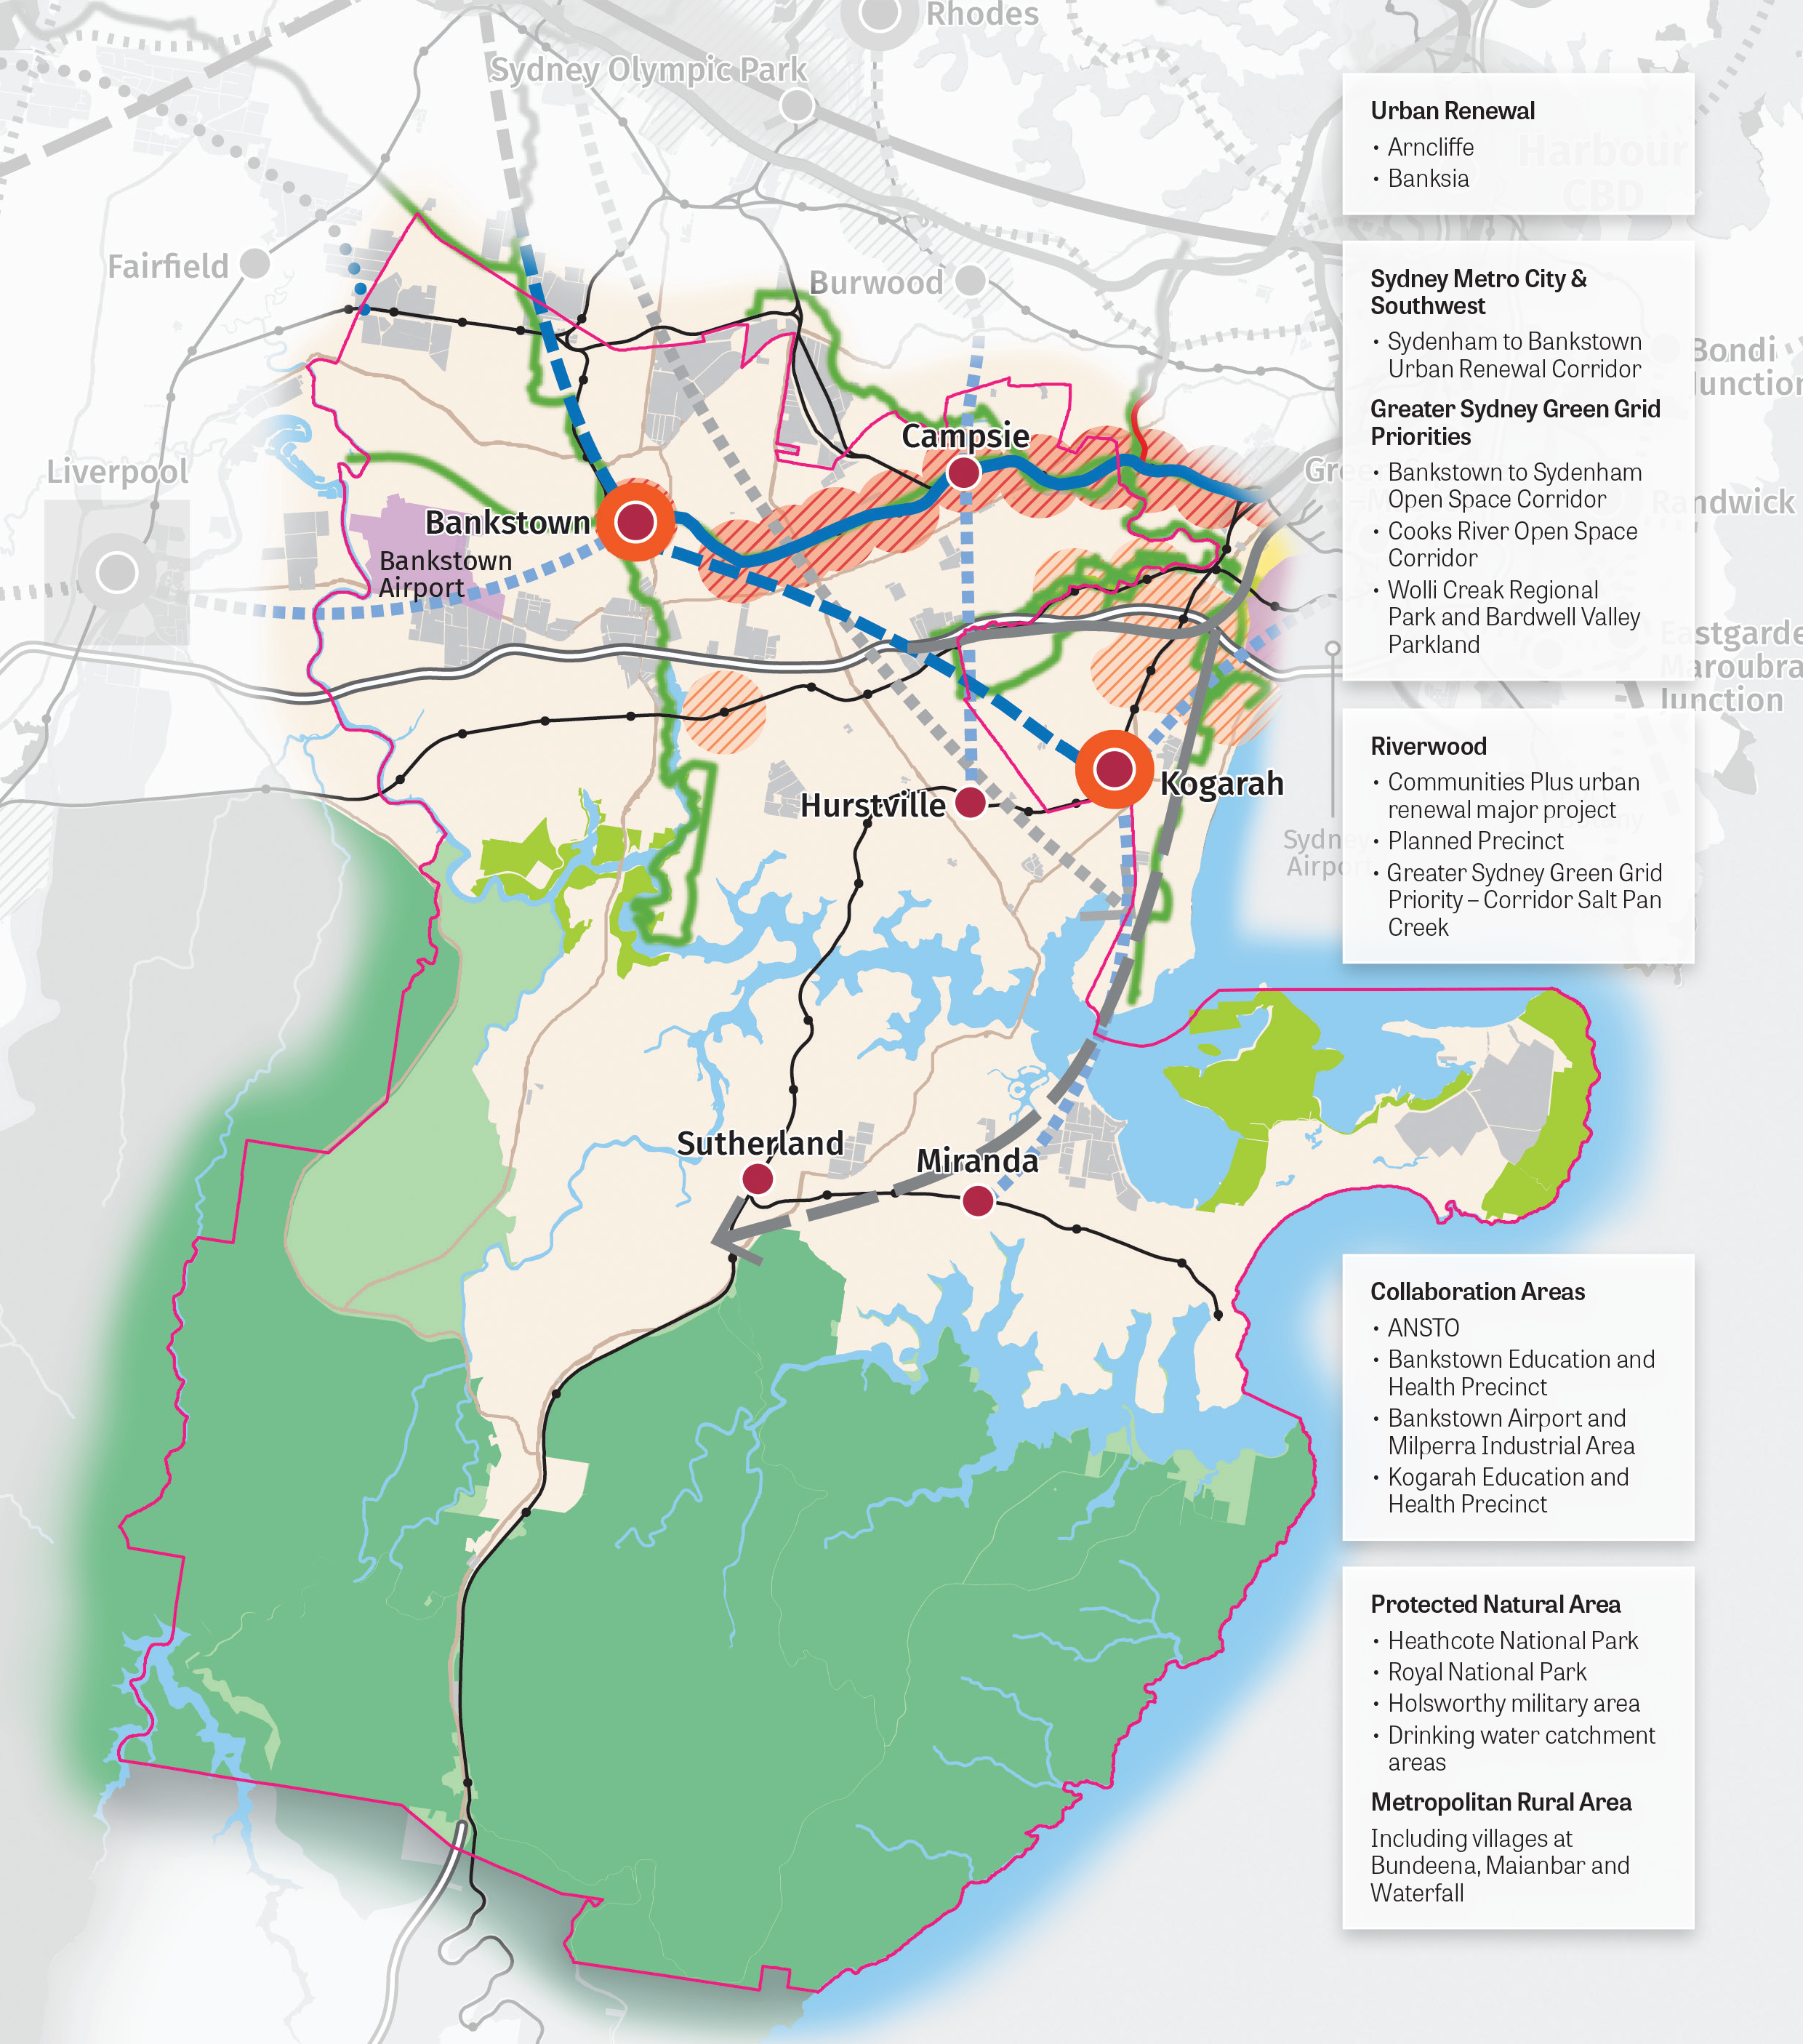 Illustrated map of the South District showing areas of urban renewal, Sydney Metro city & southwest, greater Sydney green grid priorities, plans for development in Riverwood, collaboration areas, protected natural areas and metropolitan rural areas.